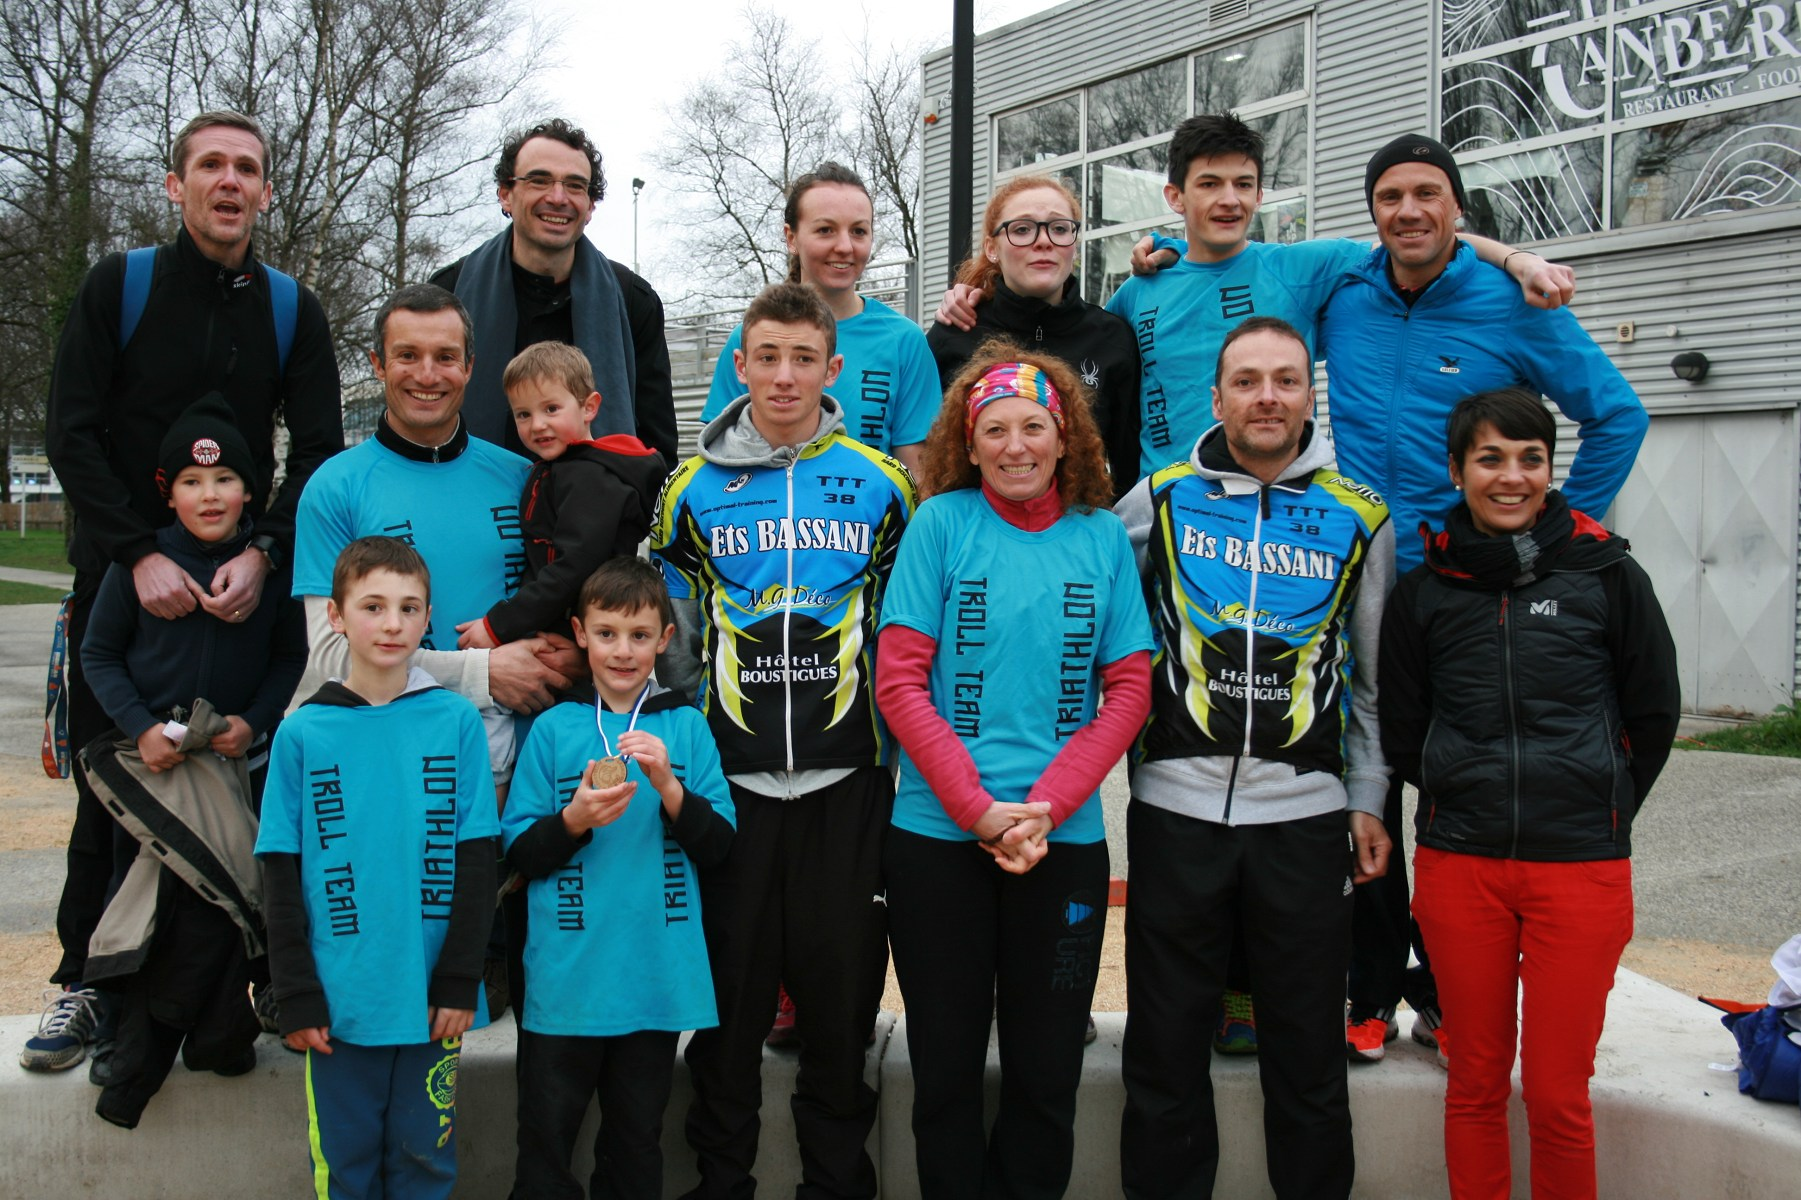 _copie-0_aquathlon grenoble 2015 018